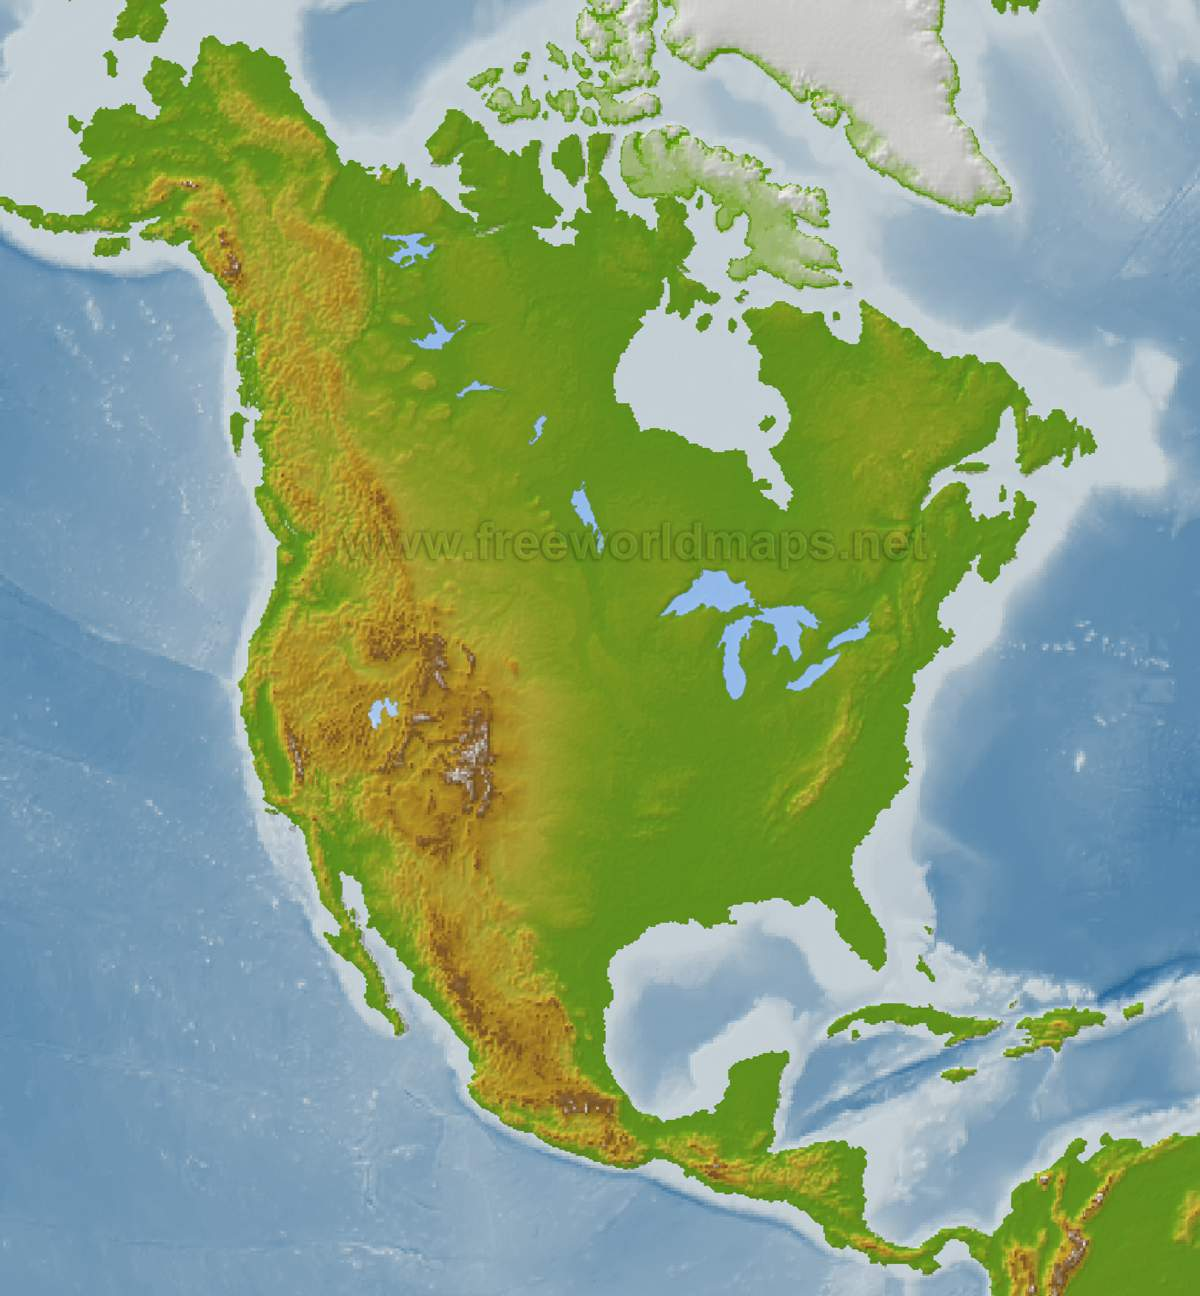 Map Of North America A Source For All Kinds Of Maps Of North America - North america physical map test